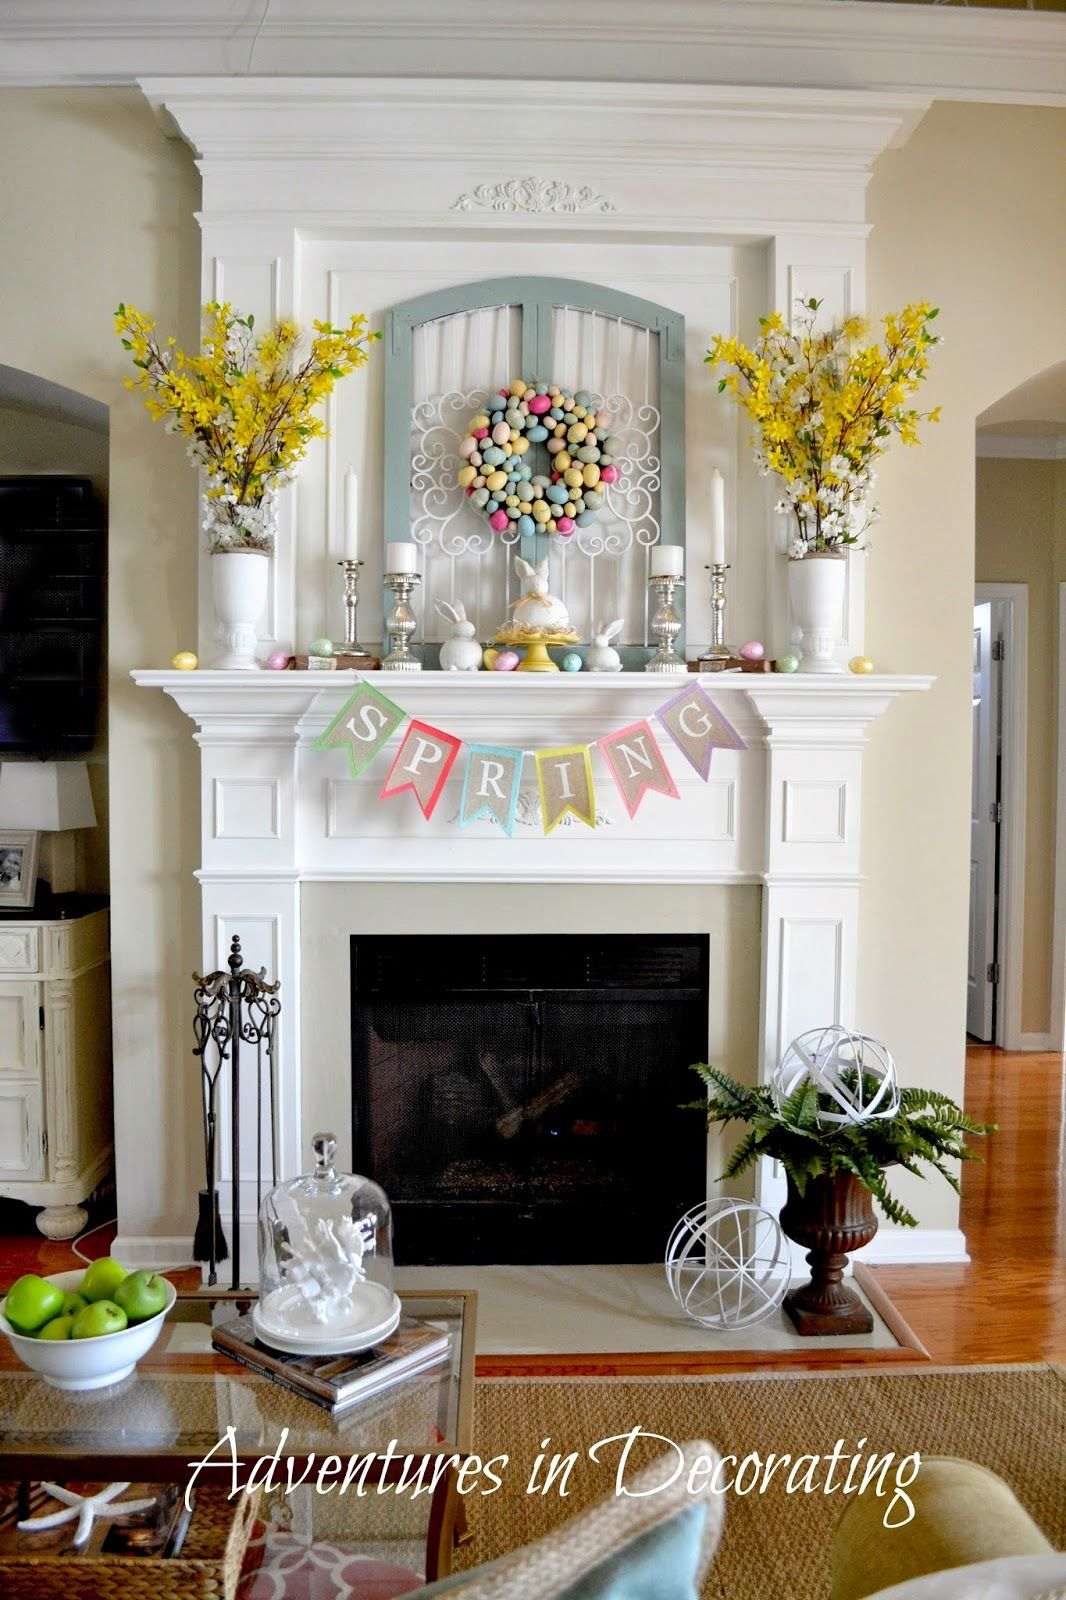 Adventures in Decorating Spring/Easter Décor 2014...Lovely! //adventuresindecorating1.blogspot.com/2014 /03/styling-our-spring-mantel.html & Adventures in Decorating Spring/Easter Décor 2014...Lovely! http ...